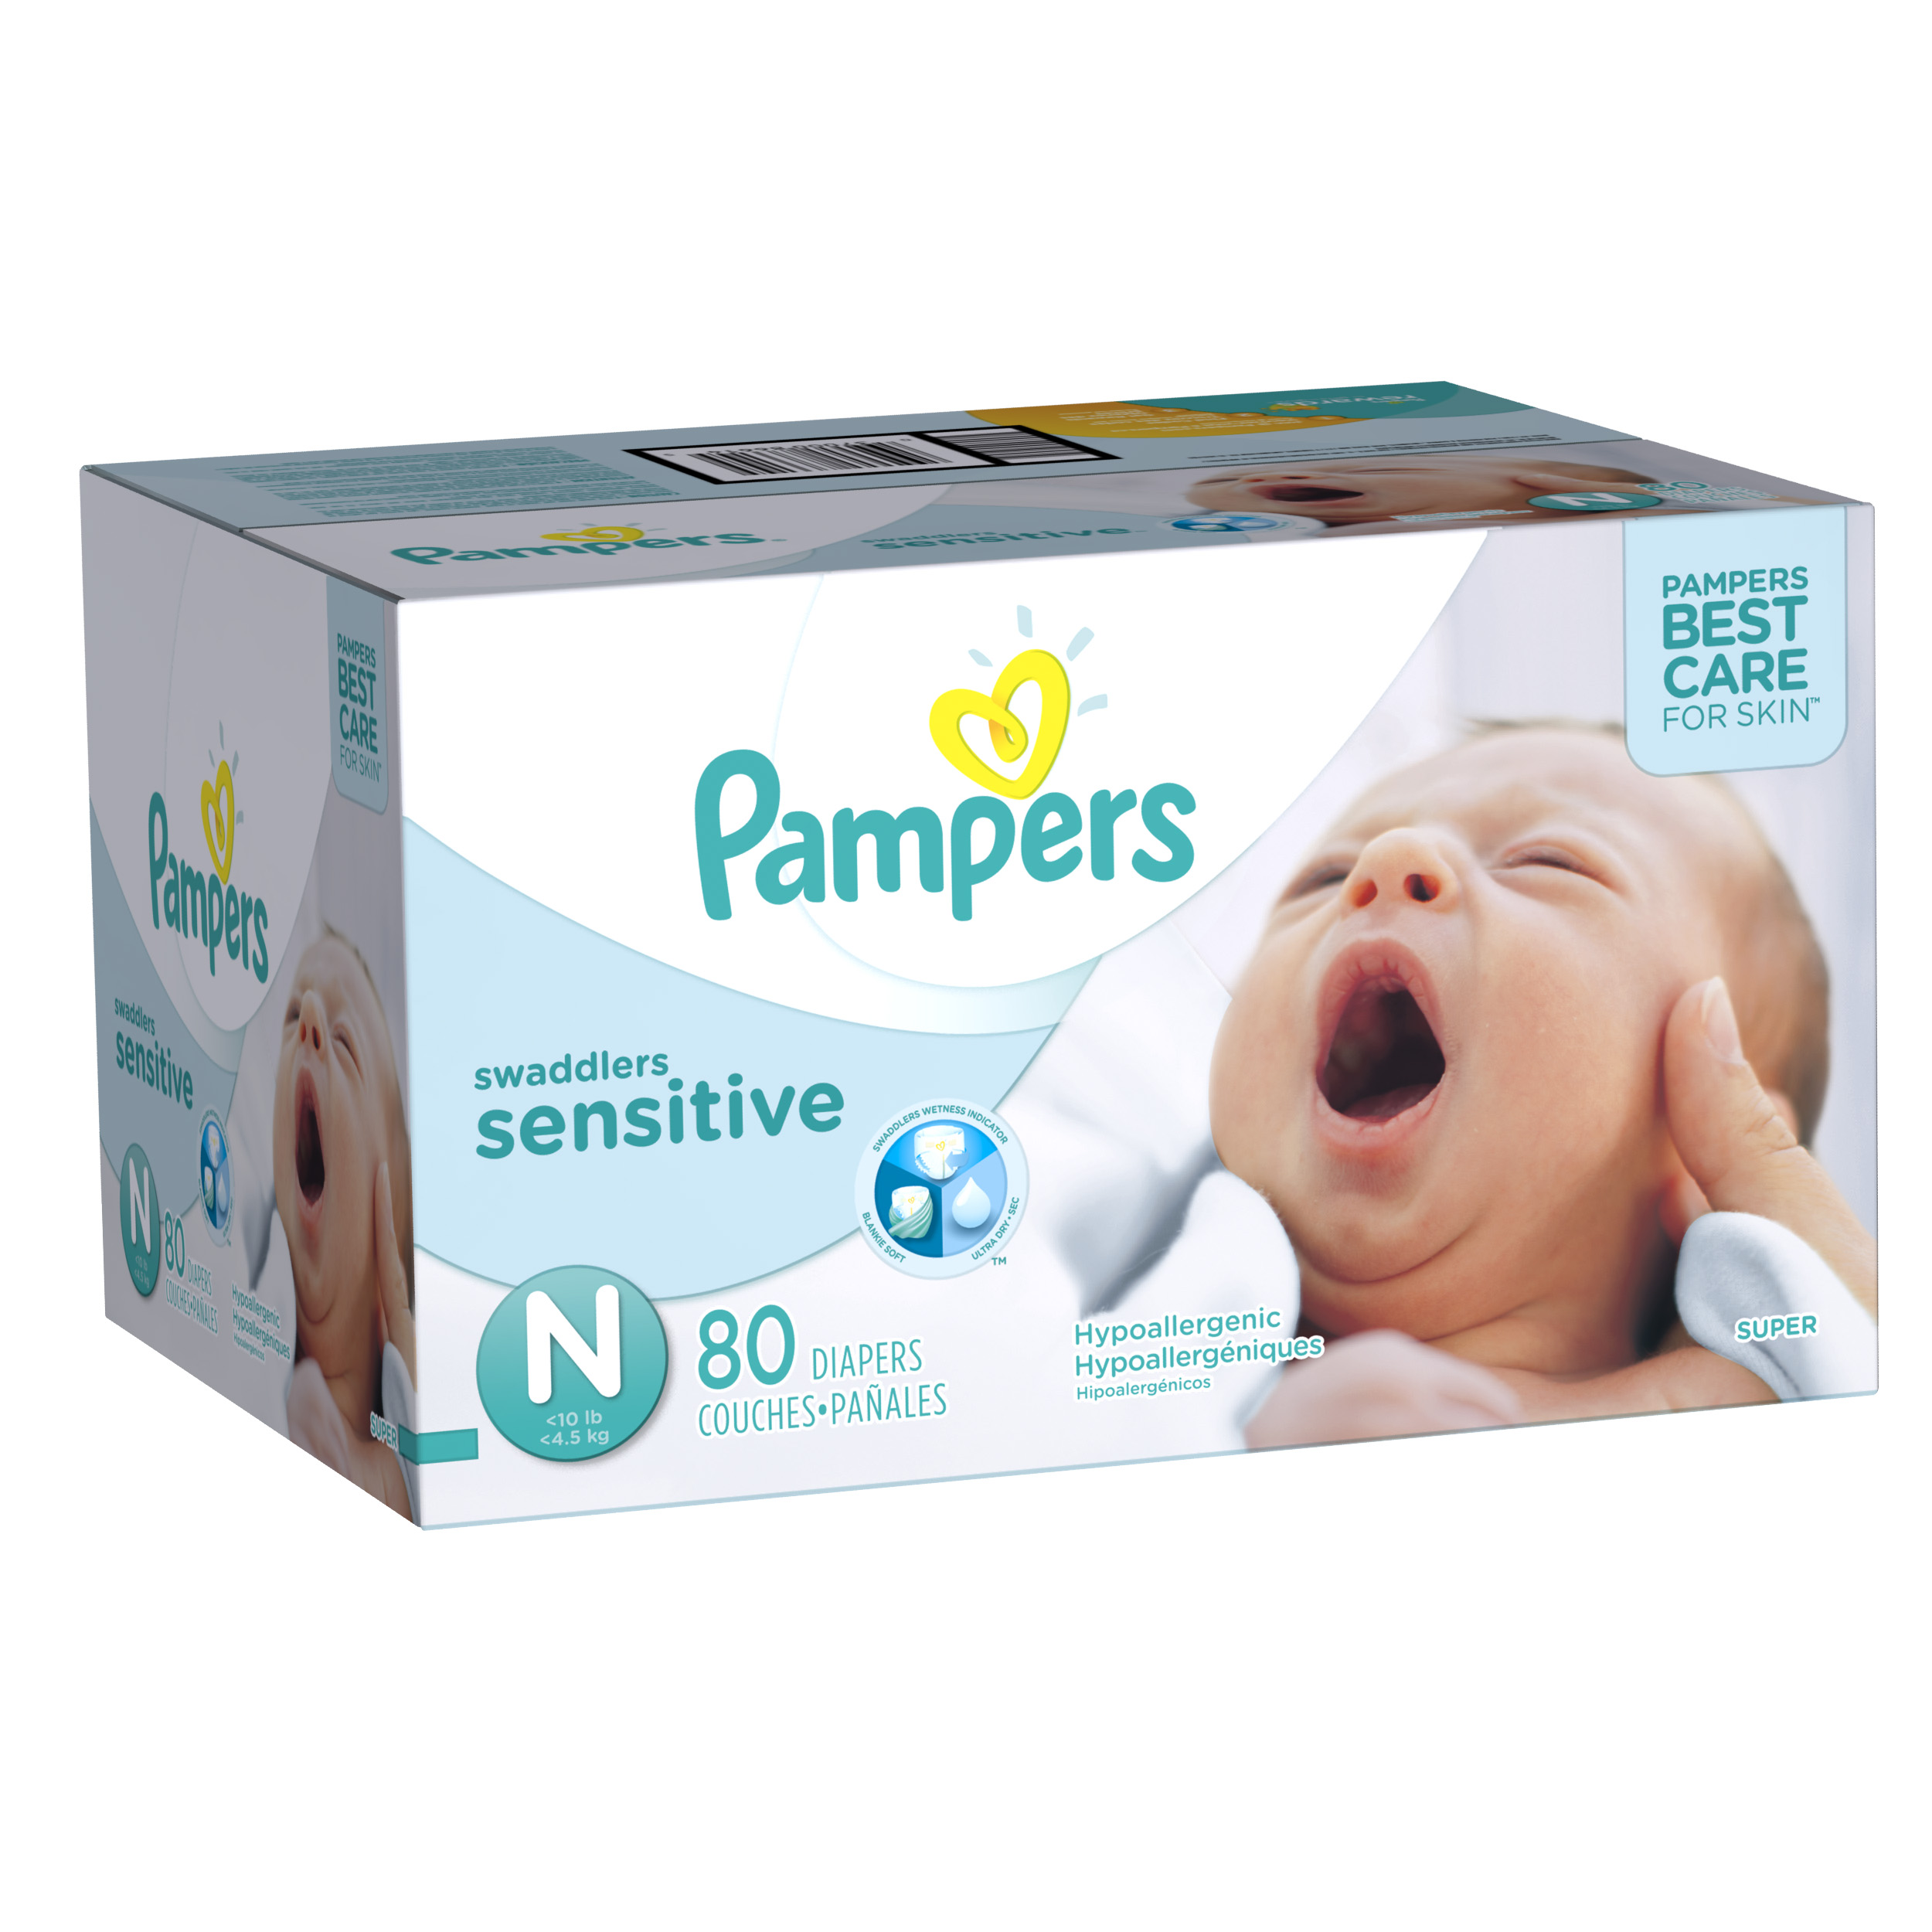 Pampers Swaddlers Sensitive Diapers, Newborn, 80 Diapers